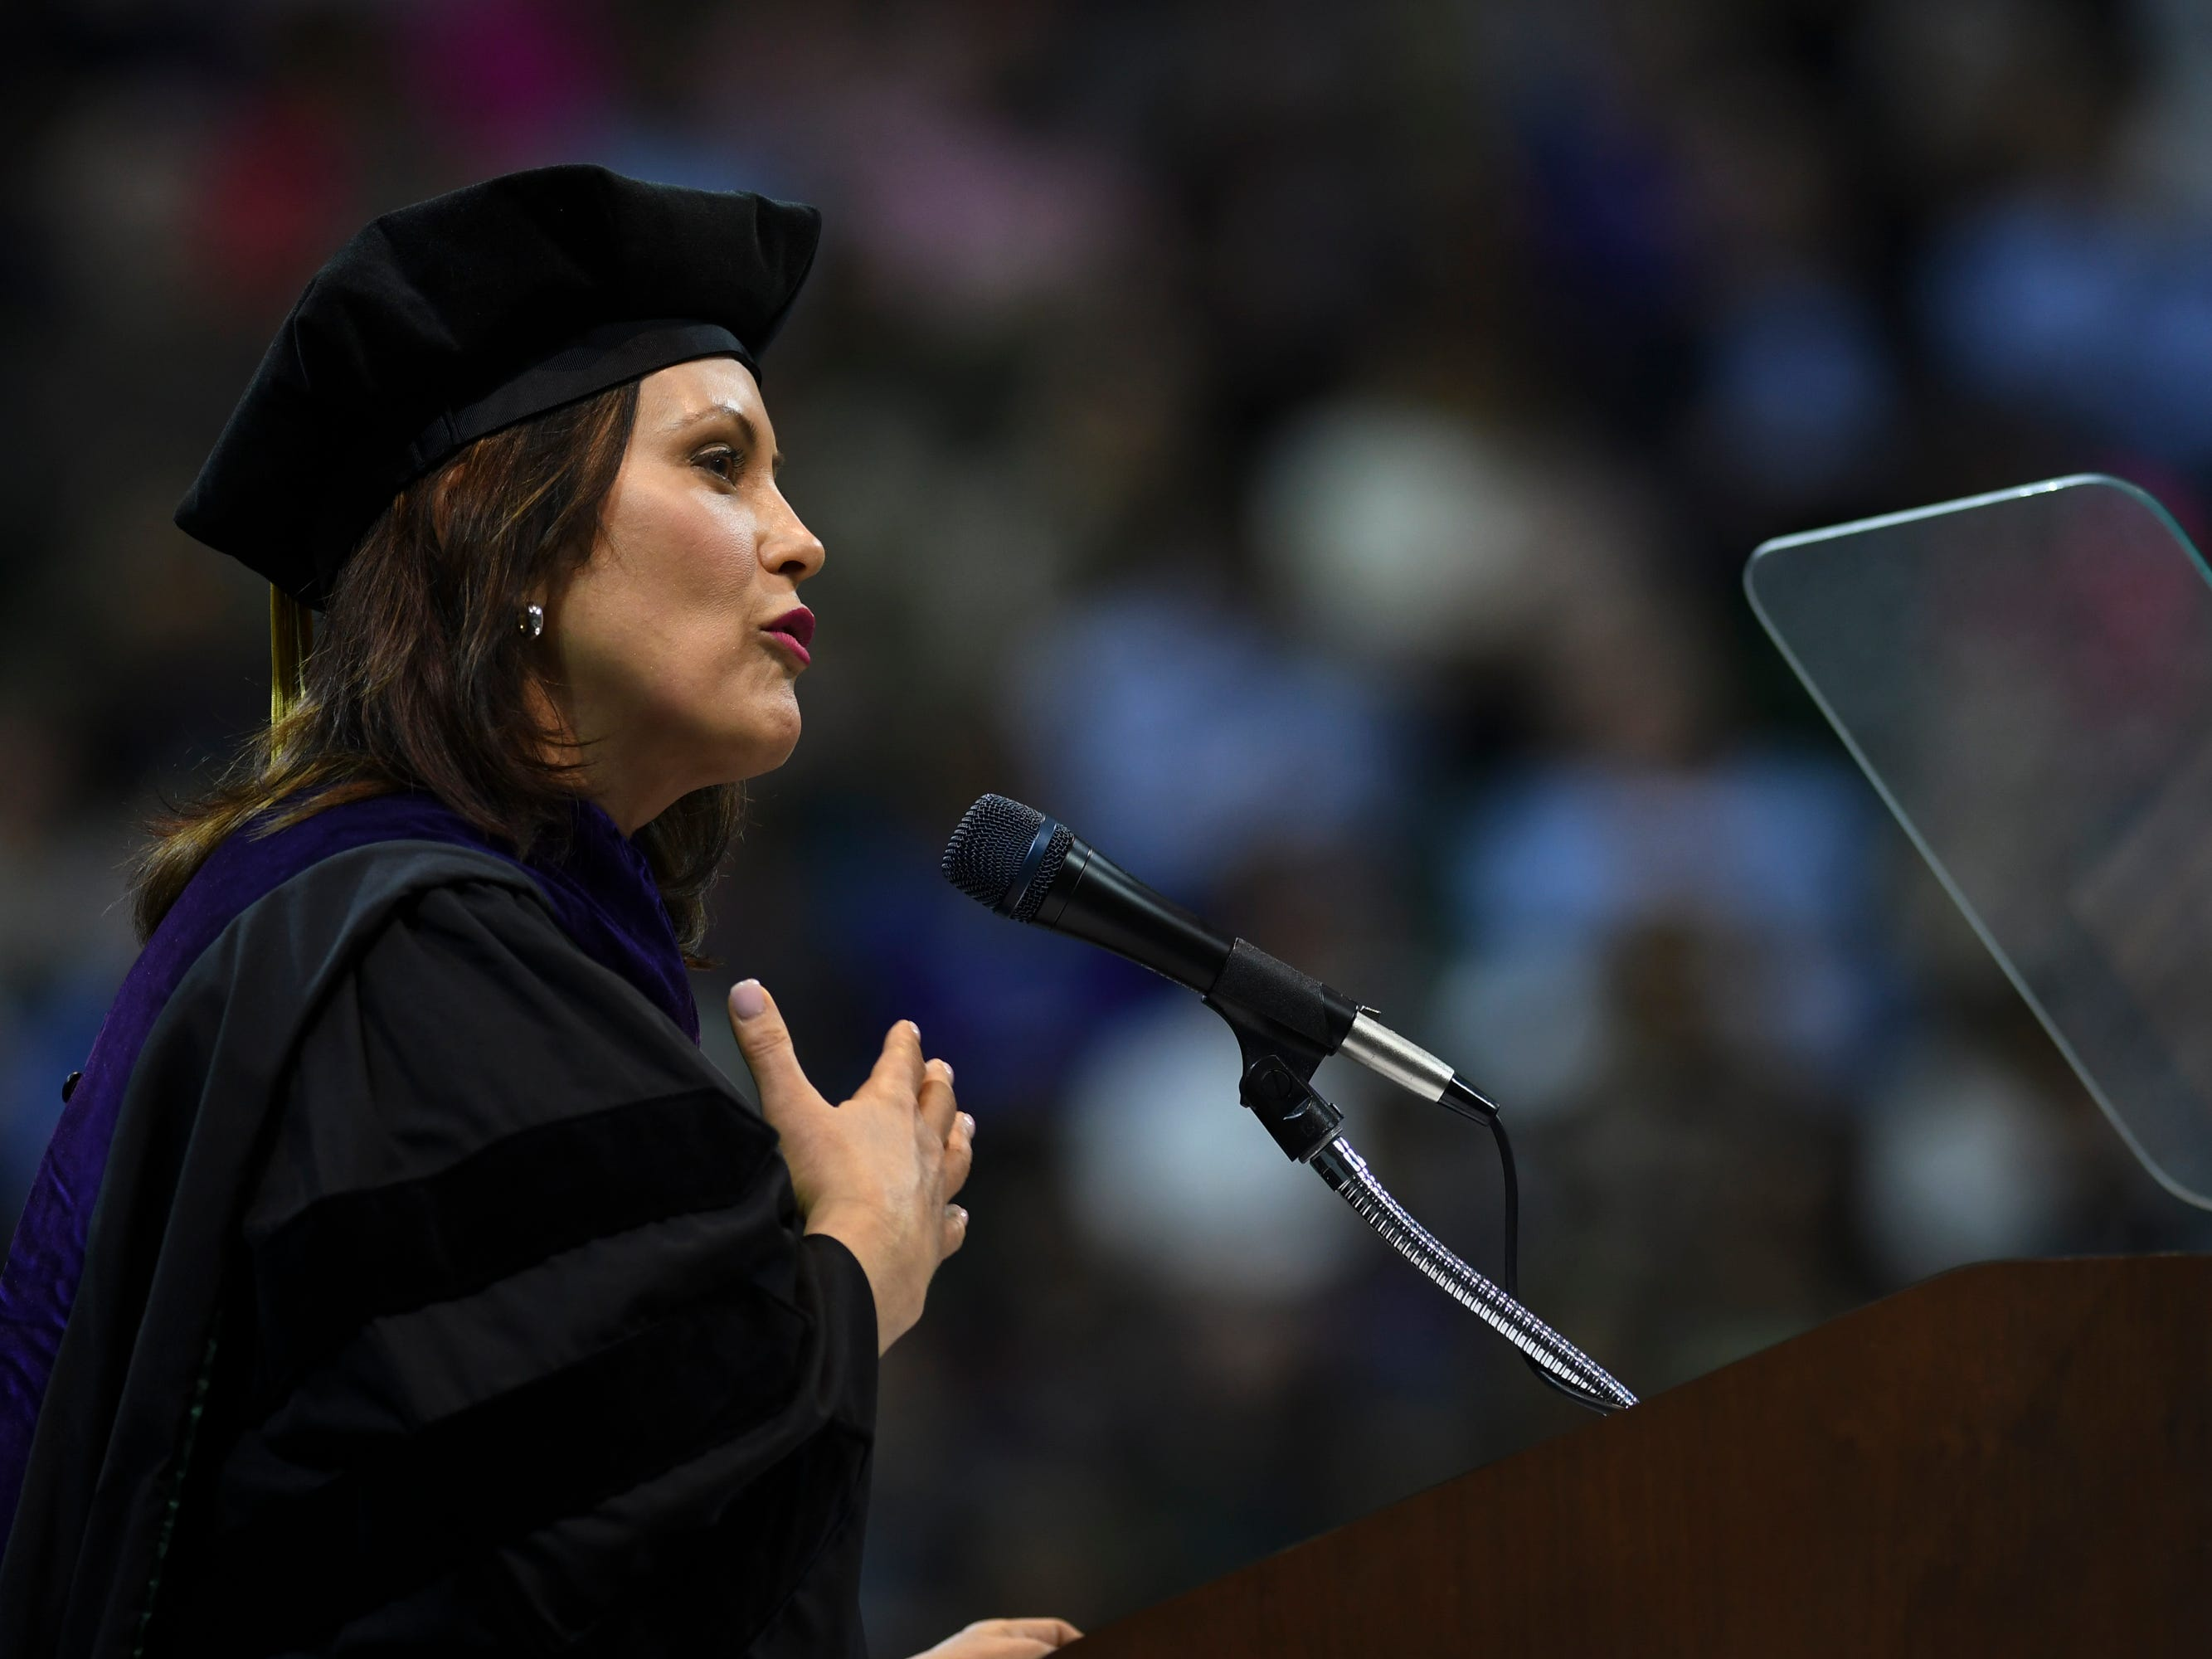 """After Michigan Gov. Gretchen Whitmer joked about not mentioning her campaign slogan on fixing roads, she gave these four pieces of advice to Michigan State University graduates Friday, May 3, 2019, at the Breslin Center:  """"Build bridges - don't live under them, look for inspiration in unusual places, wear fun socks and do not read the comments section."""" Whitmer has a bachelor's degree in communications from MSU.  She was awarded an honor degree of Doctor of Laws Friday afternoon."""